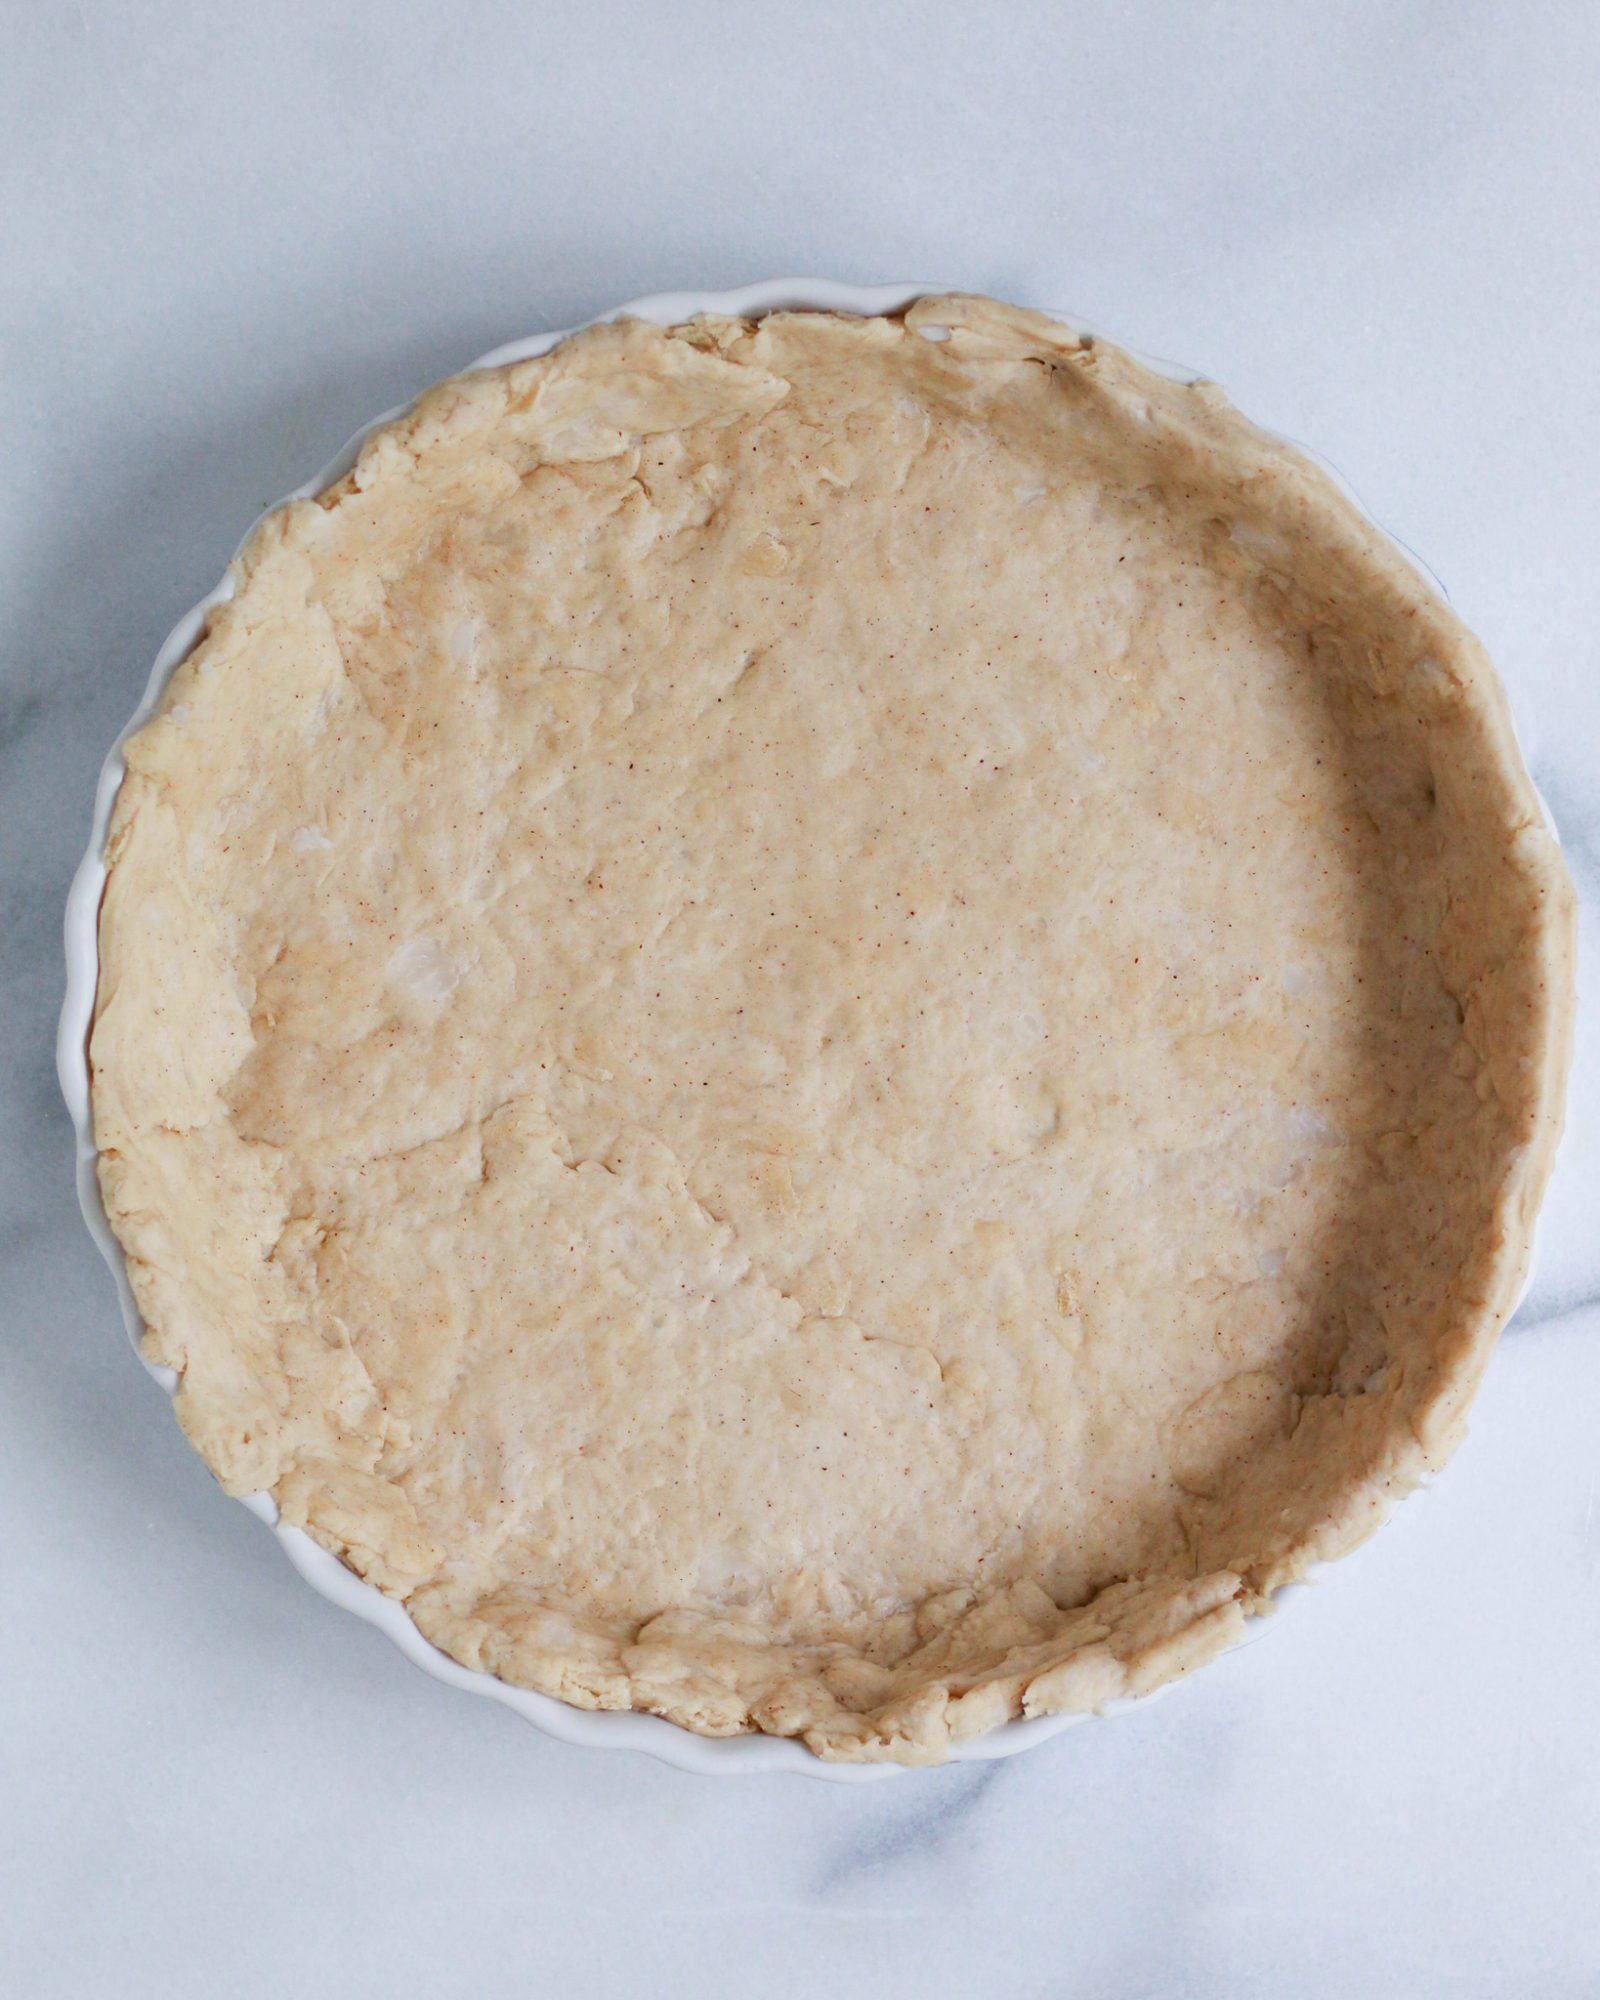 vegan pie crust made with coconut oil